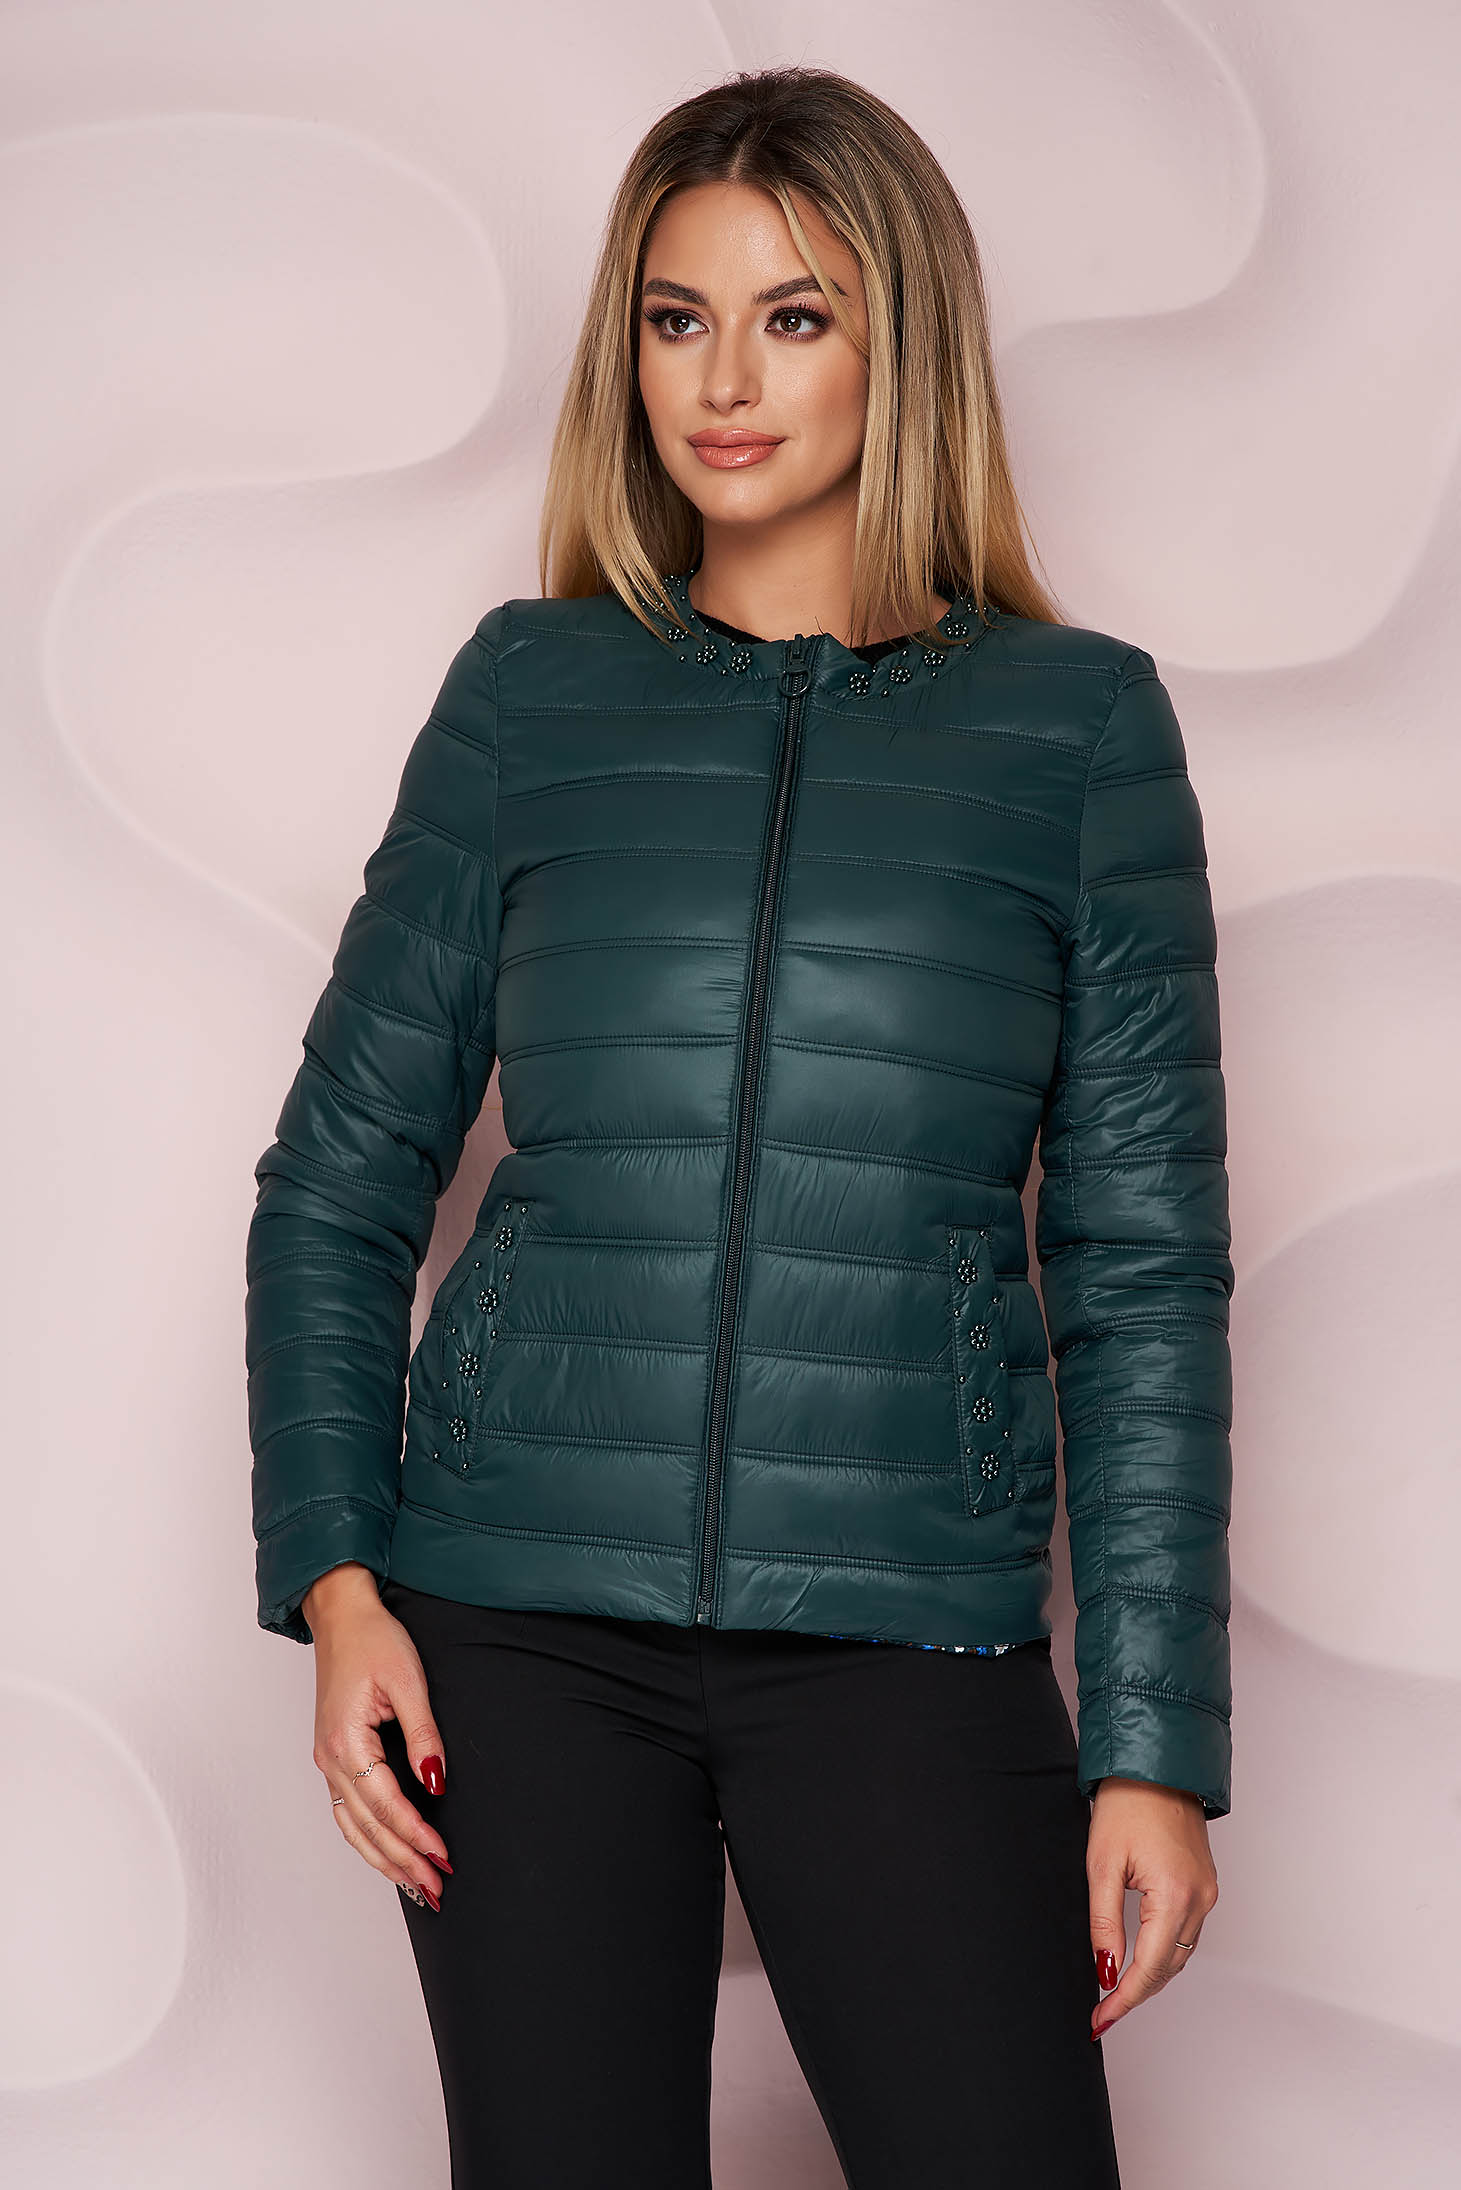 Darkgreen jacket from slicker thin fabric with pockets with pearls straight